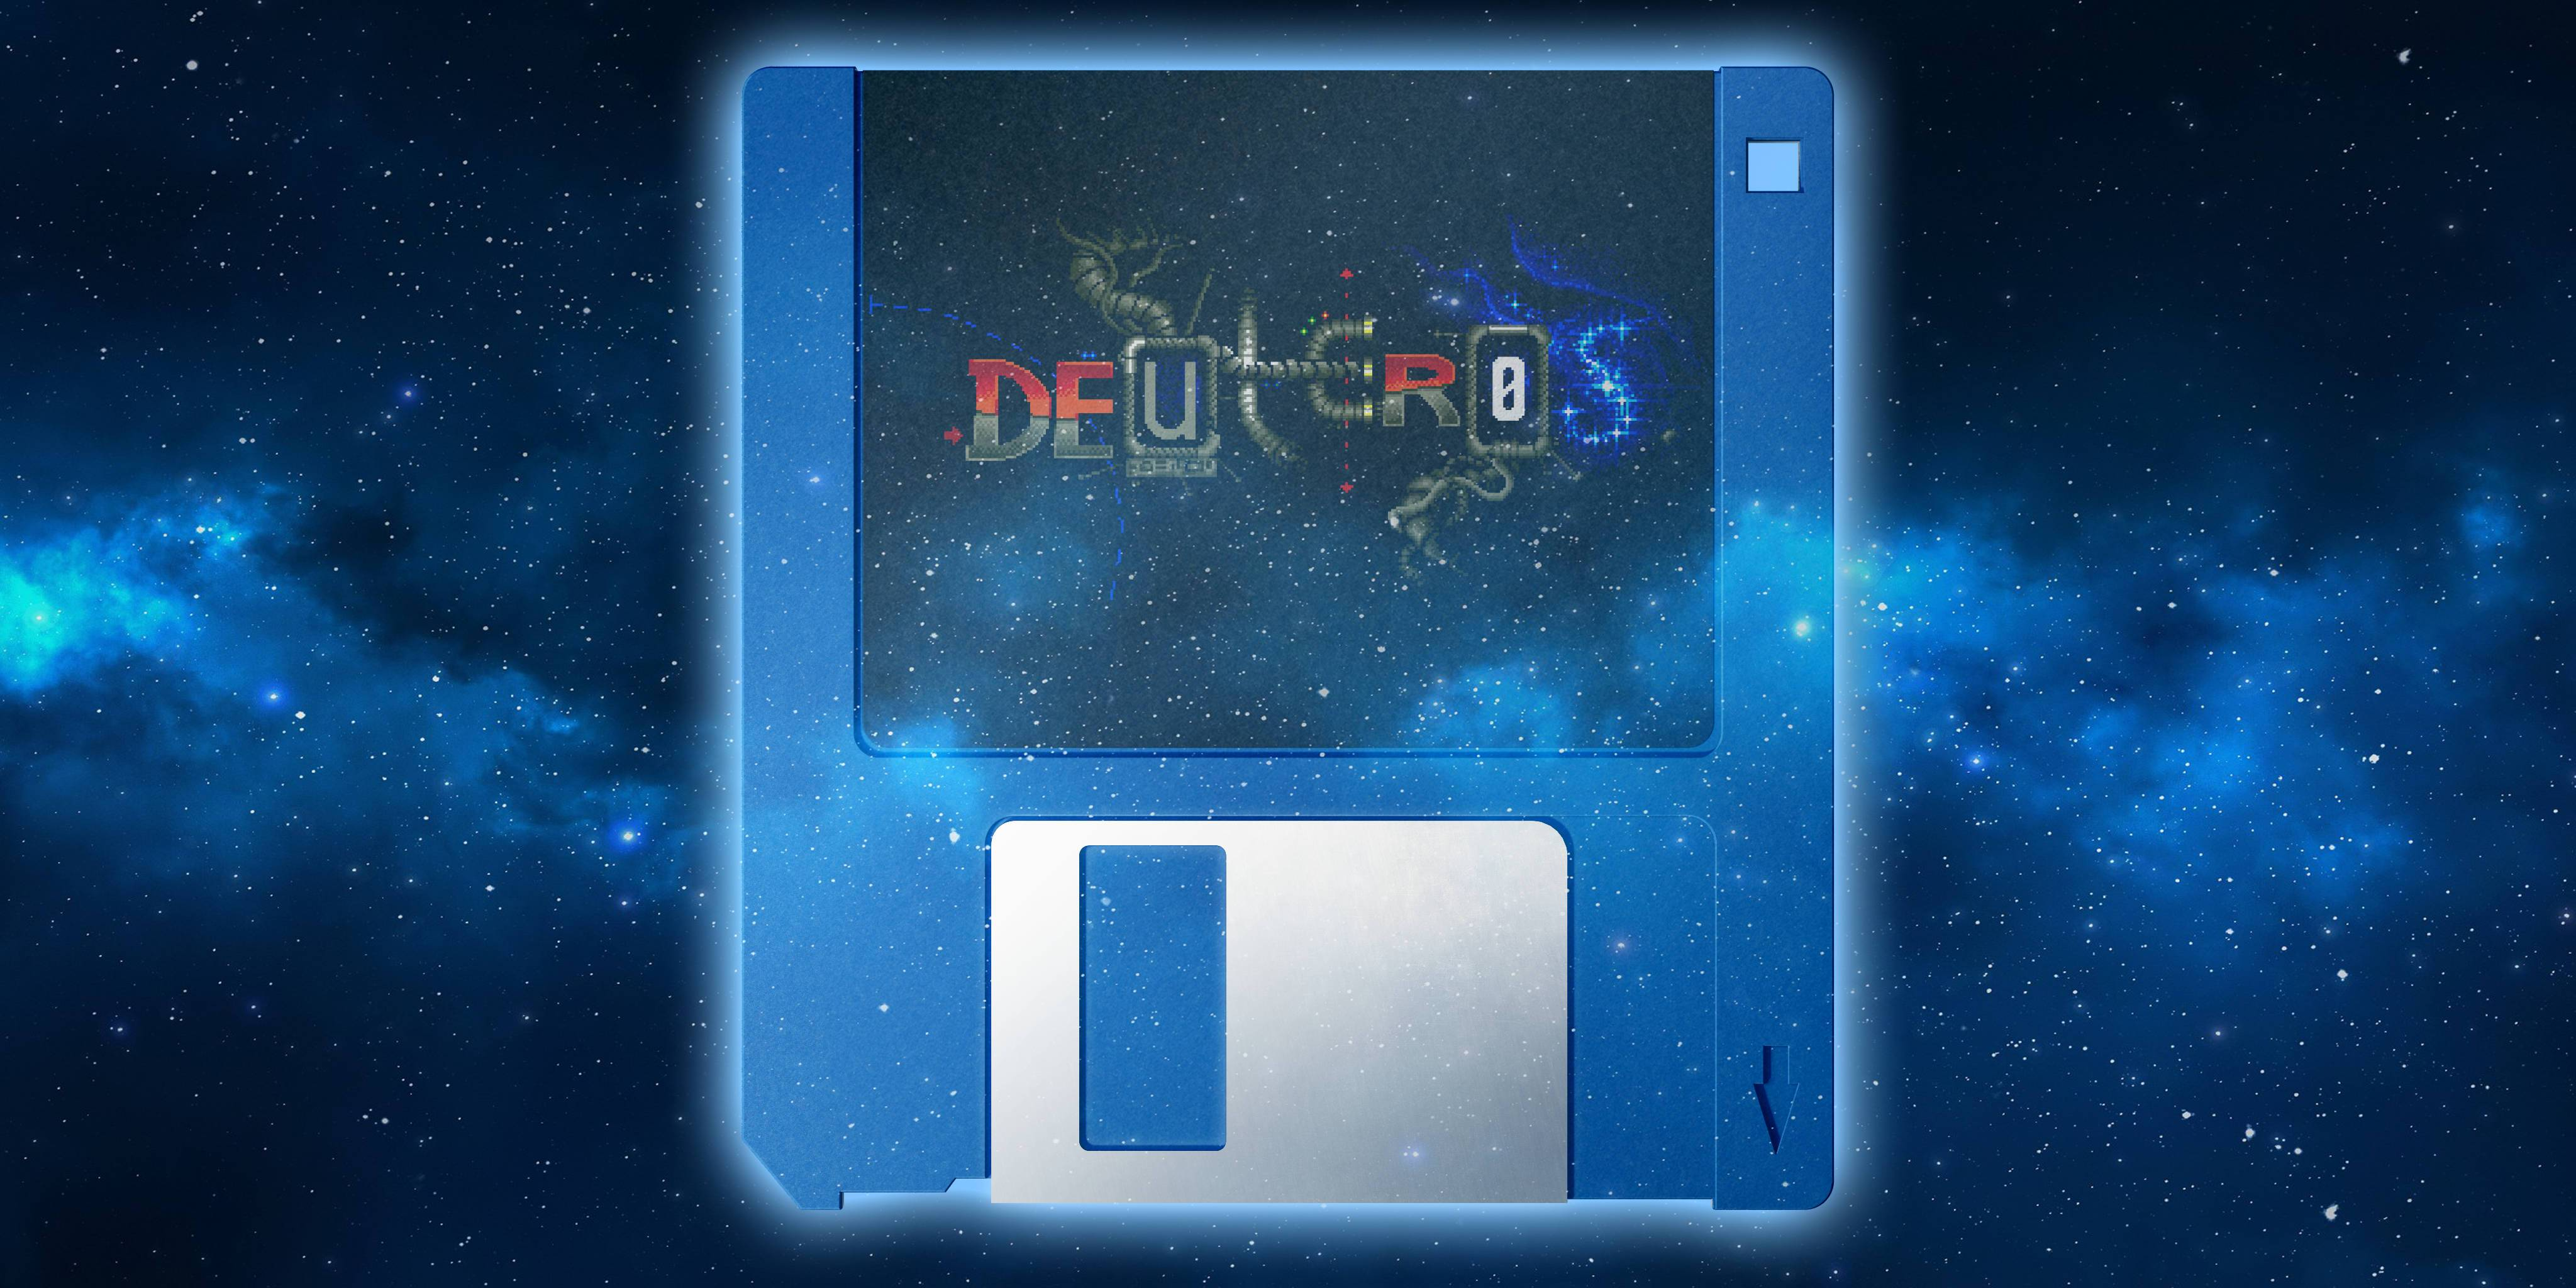 Deuteros (1991) from Activision<em>© Activision, modified by Krischan</em>